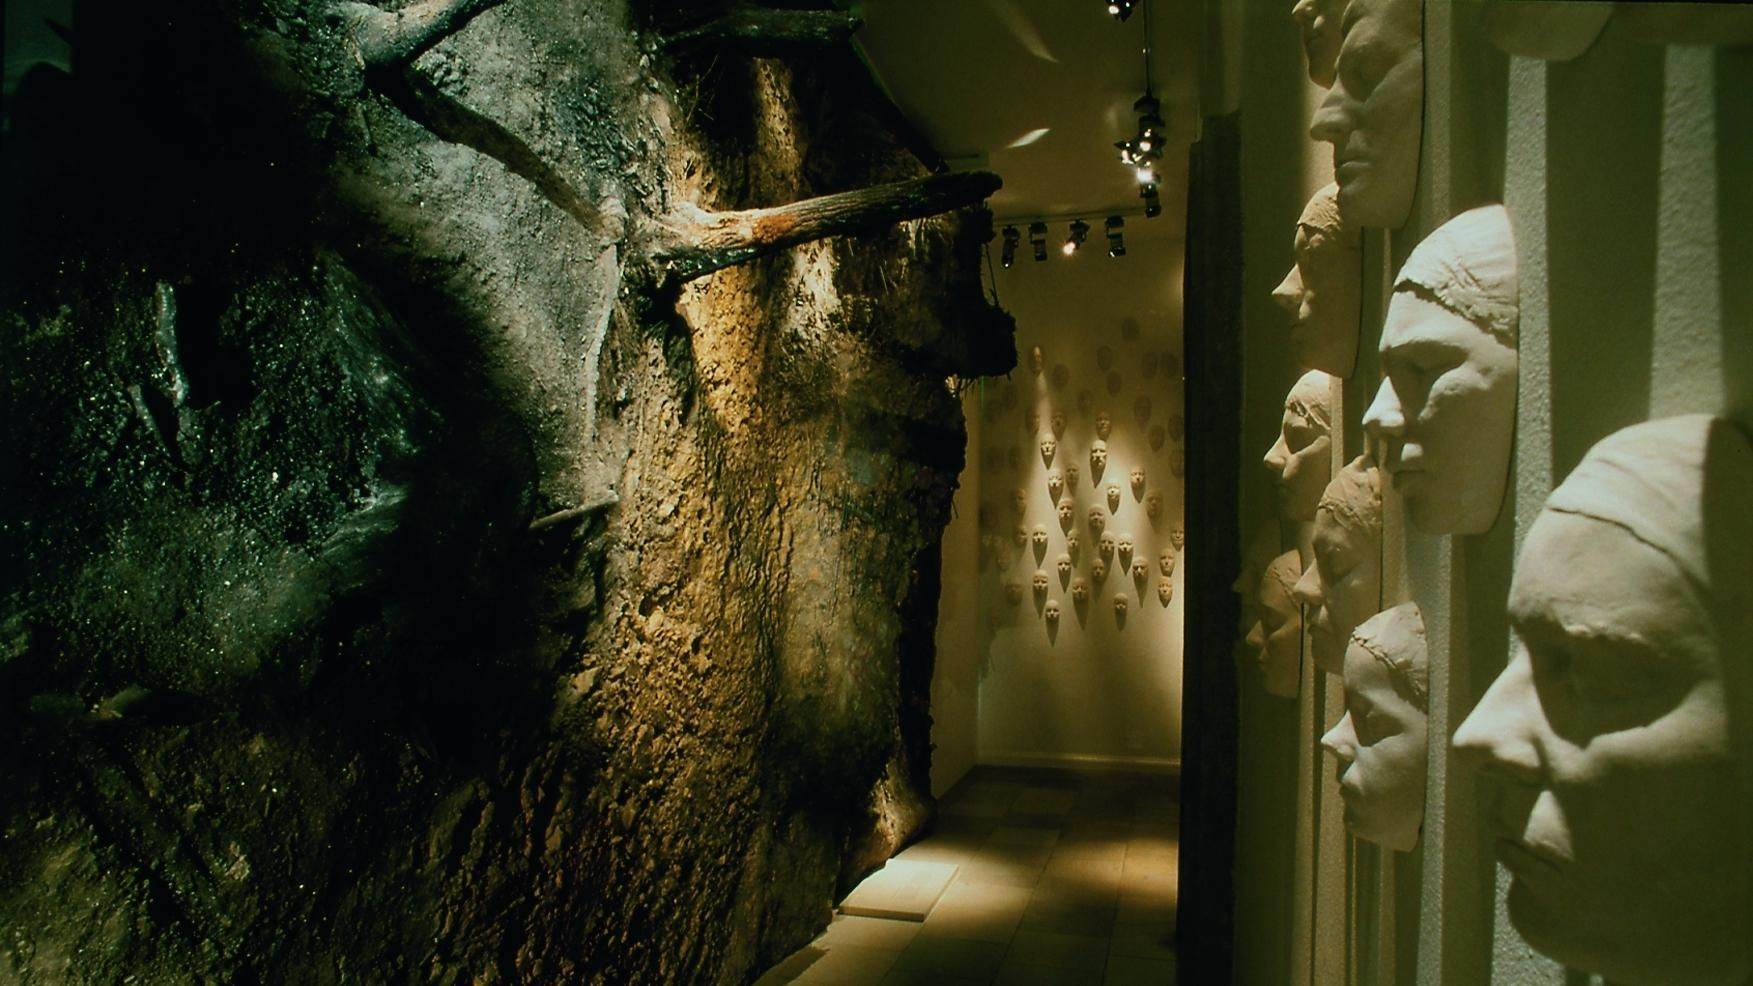 Cleared forest areas, waste pits and settlement remains, traces of cattle herds, people everywhere: this staging in the State Museum of Prehistory shows consequences of neolithisation. © State Office for Heritage Management and Archaeology Saxony-Anhalt, Juraj Lipták.